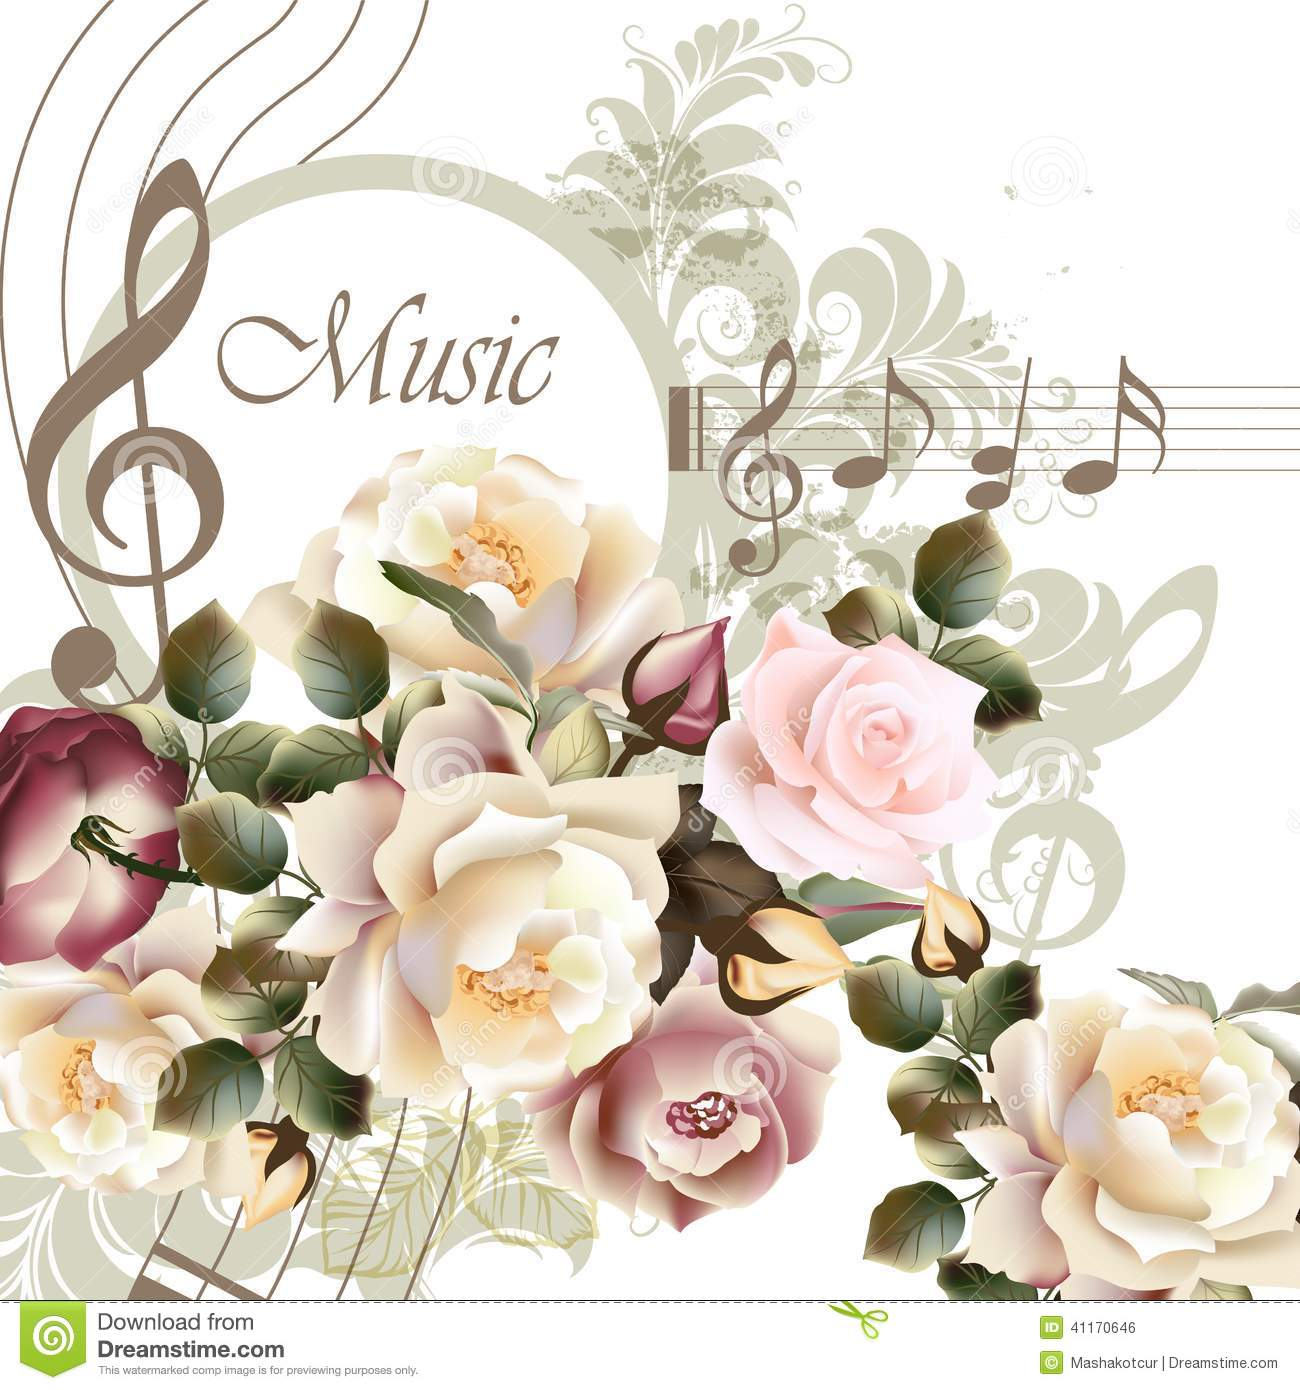 music notes backgrounds floral - photo #37